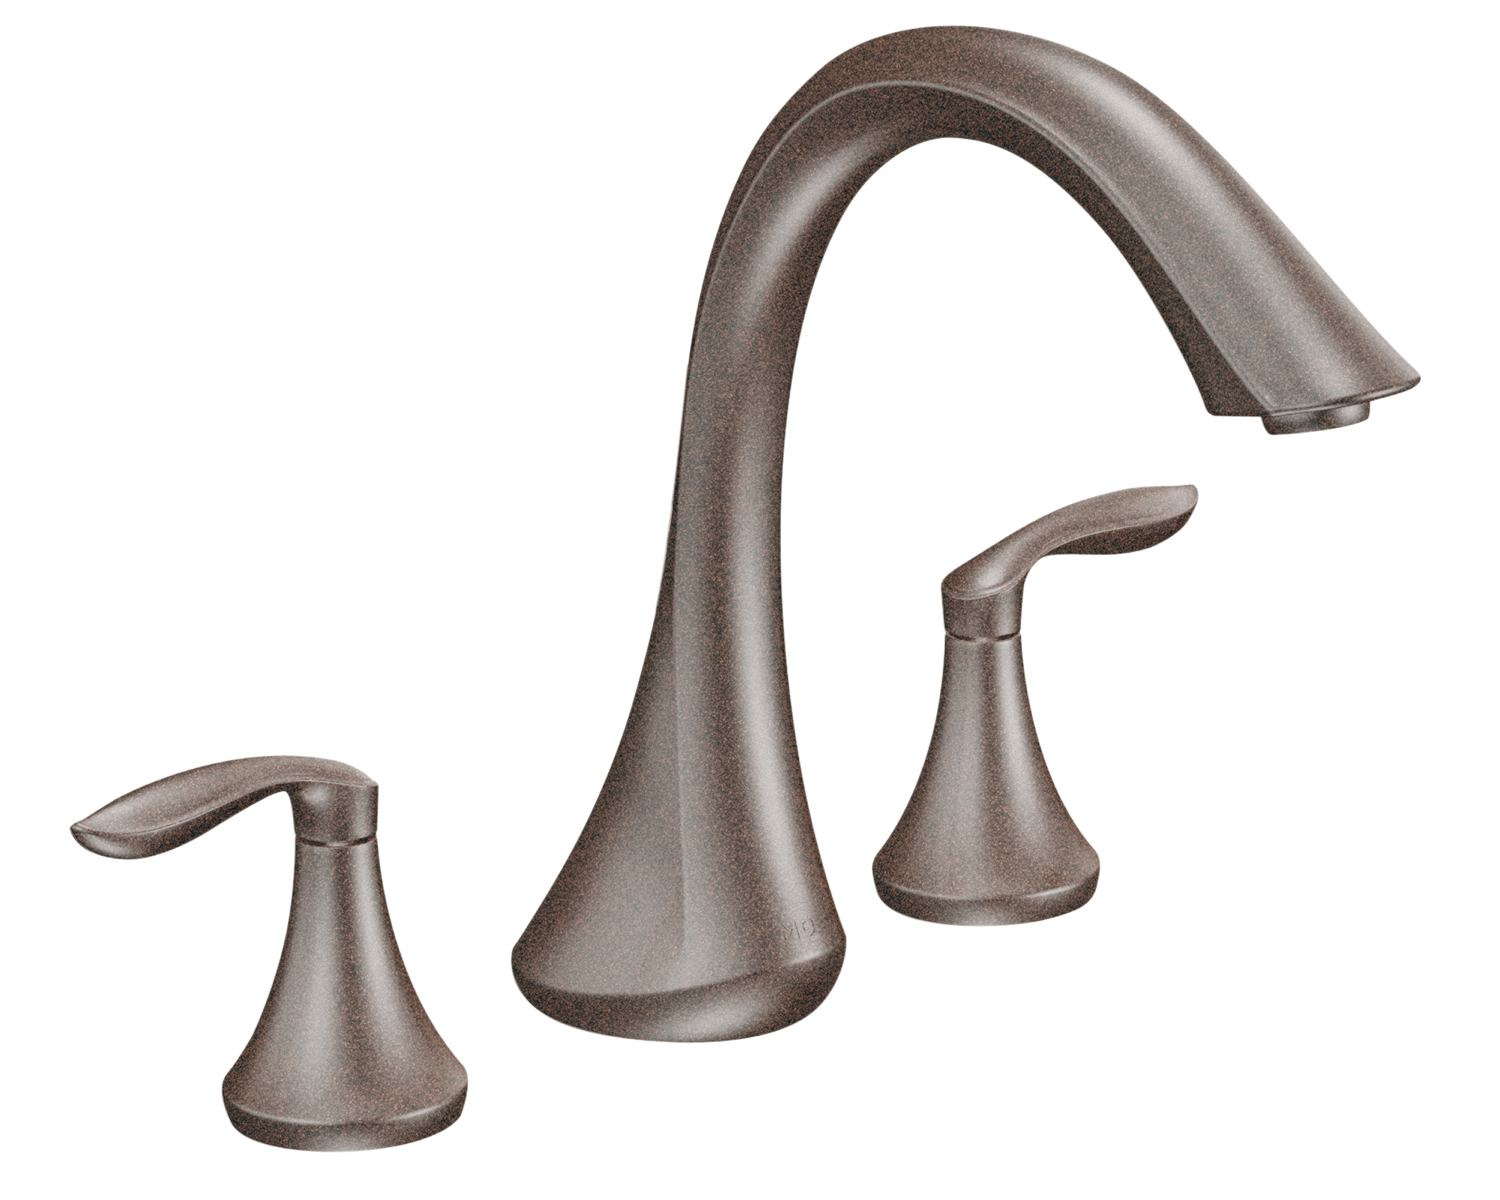 Moen T943orb Eva Two Handle High Arc Roman Tub Faucet Without Valve Oil Rubbed Bronze Bathtub